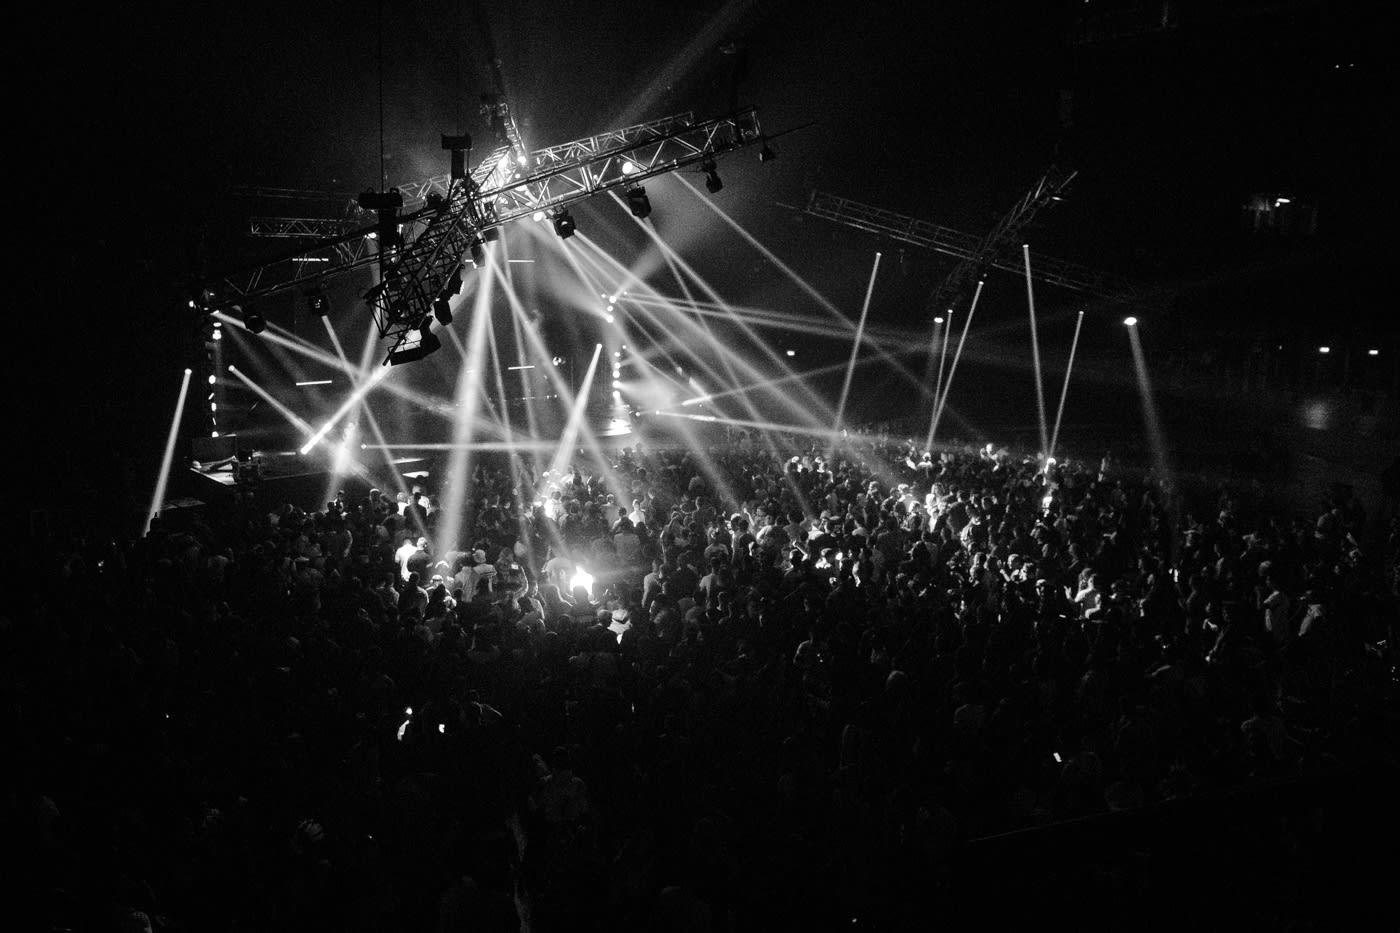 winterparty-at-3arena-dublin-30-10-2016-by-sean-smyth-29-of-53